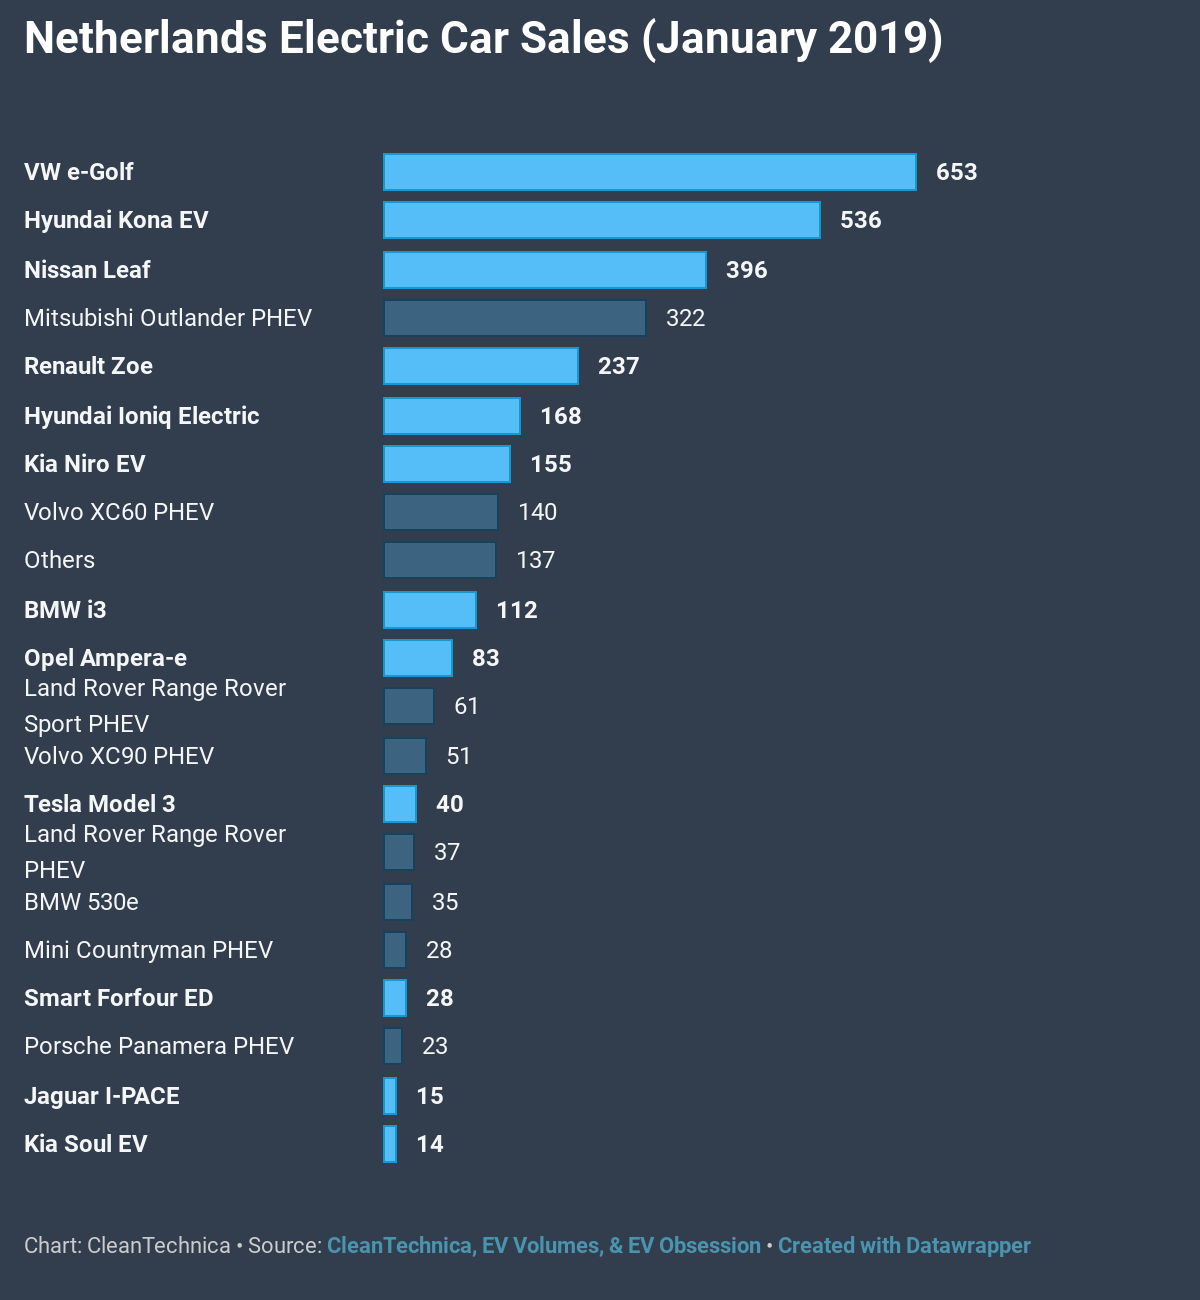 Hyundai Kona EV Jumps To #2 In Hot Netherlands Market — CleanTechnica EV Sales Report | CleanTechnica